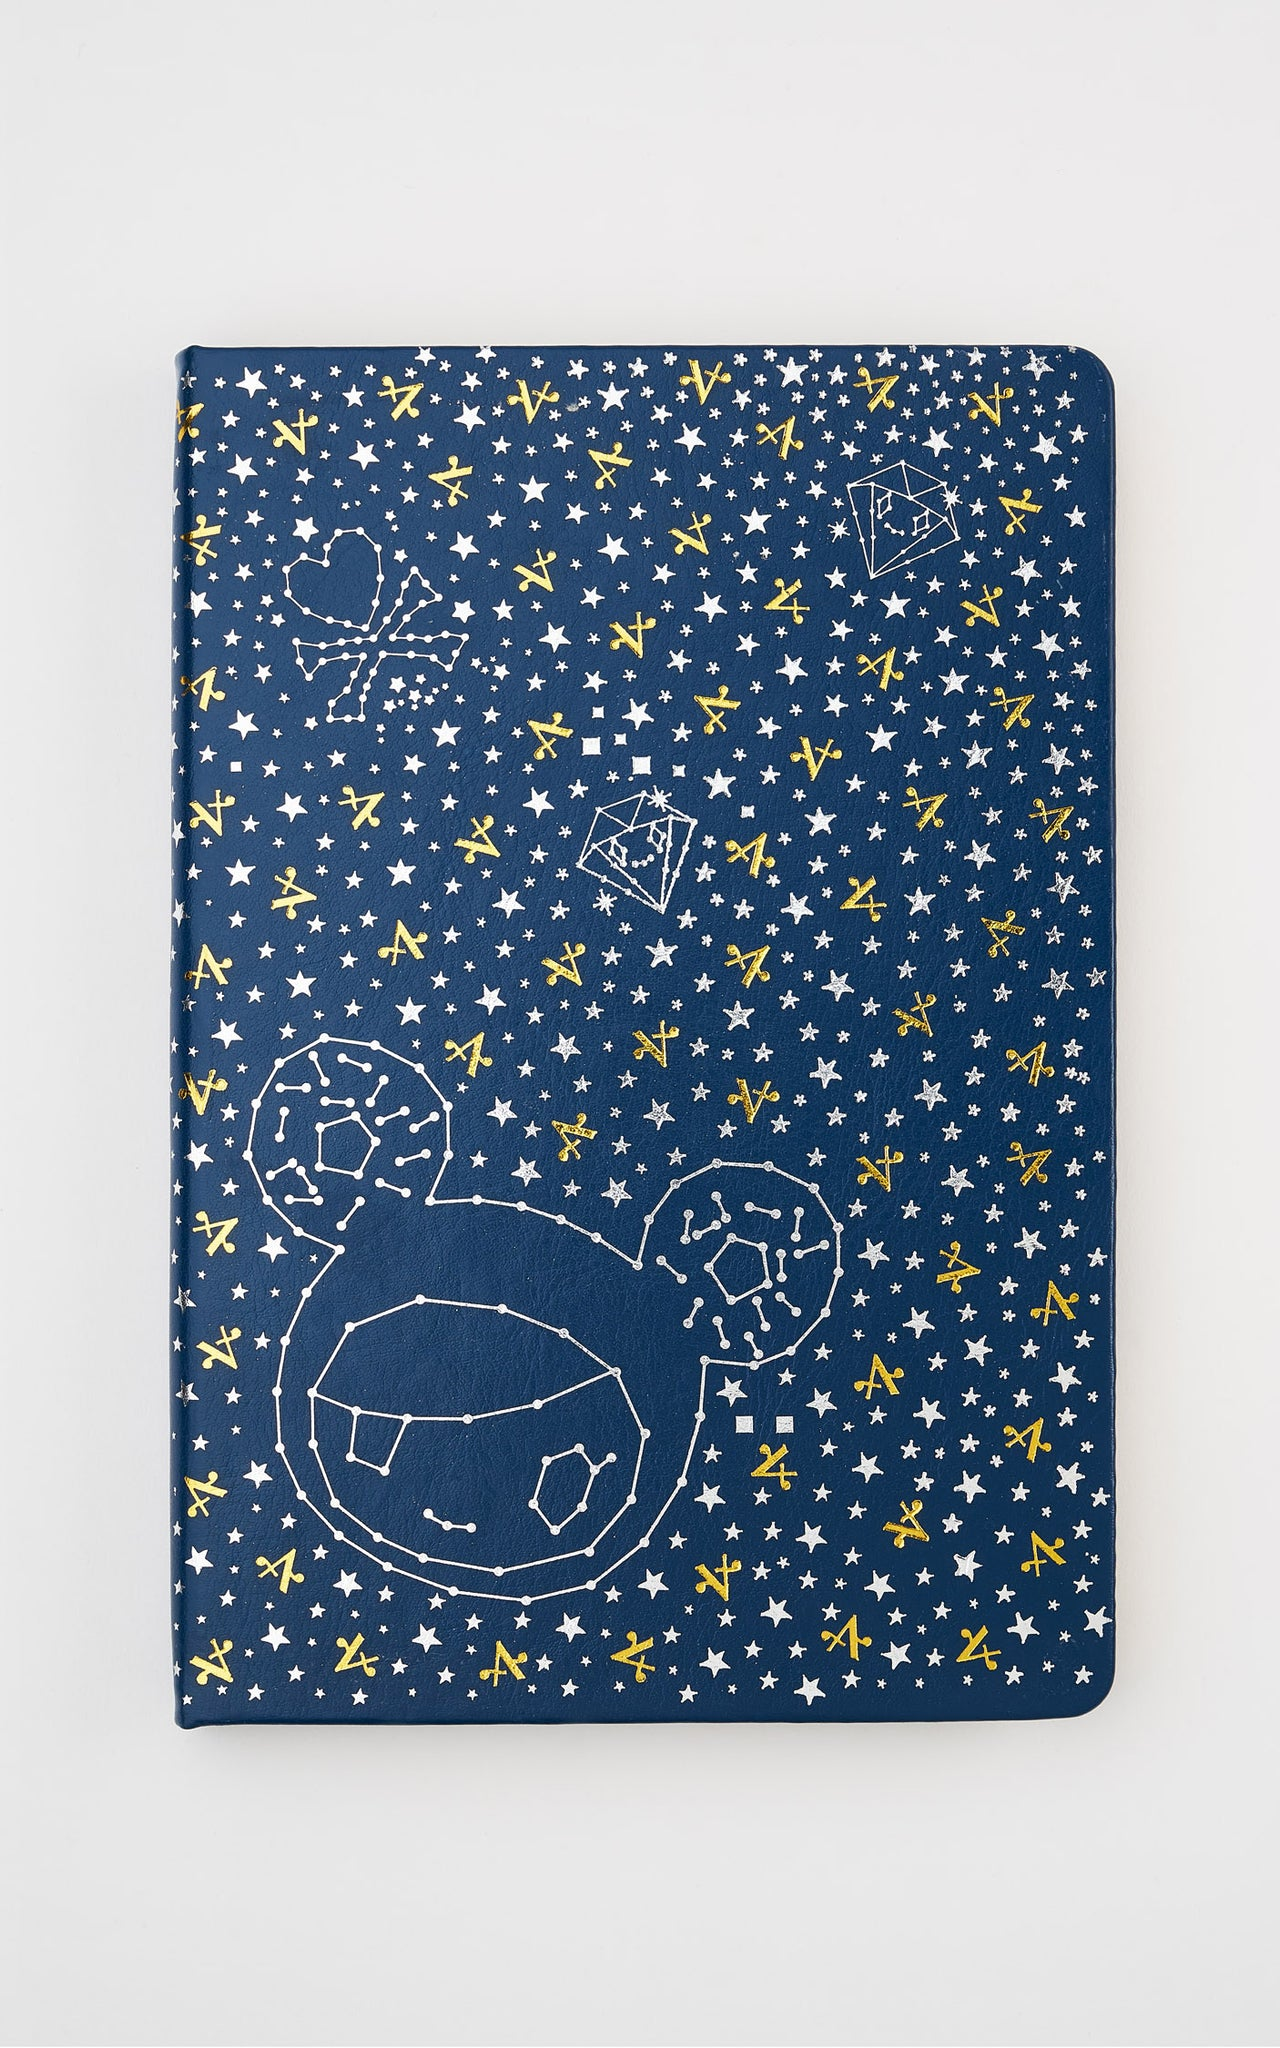 TDxAN A5 Starry Night Donutella Notebook - A.Anne, Tokidoki, Ashlyn Anne, Fashion, Handbags, School, Bag, Accessories